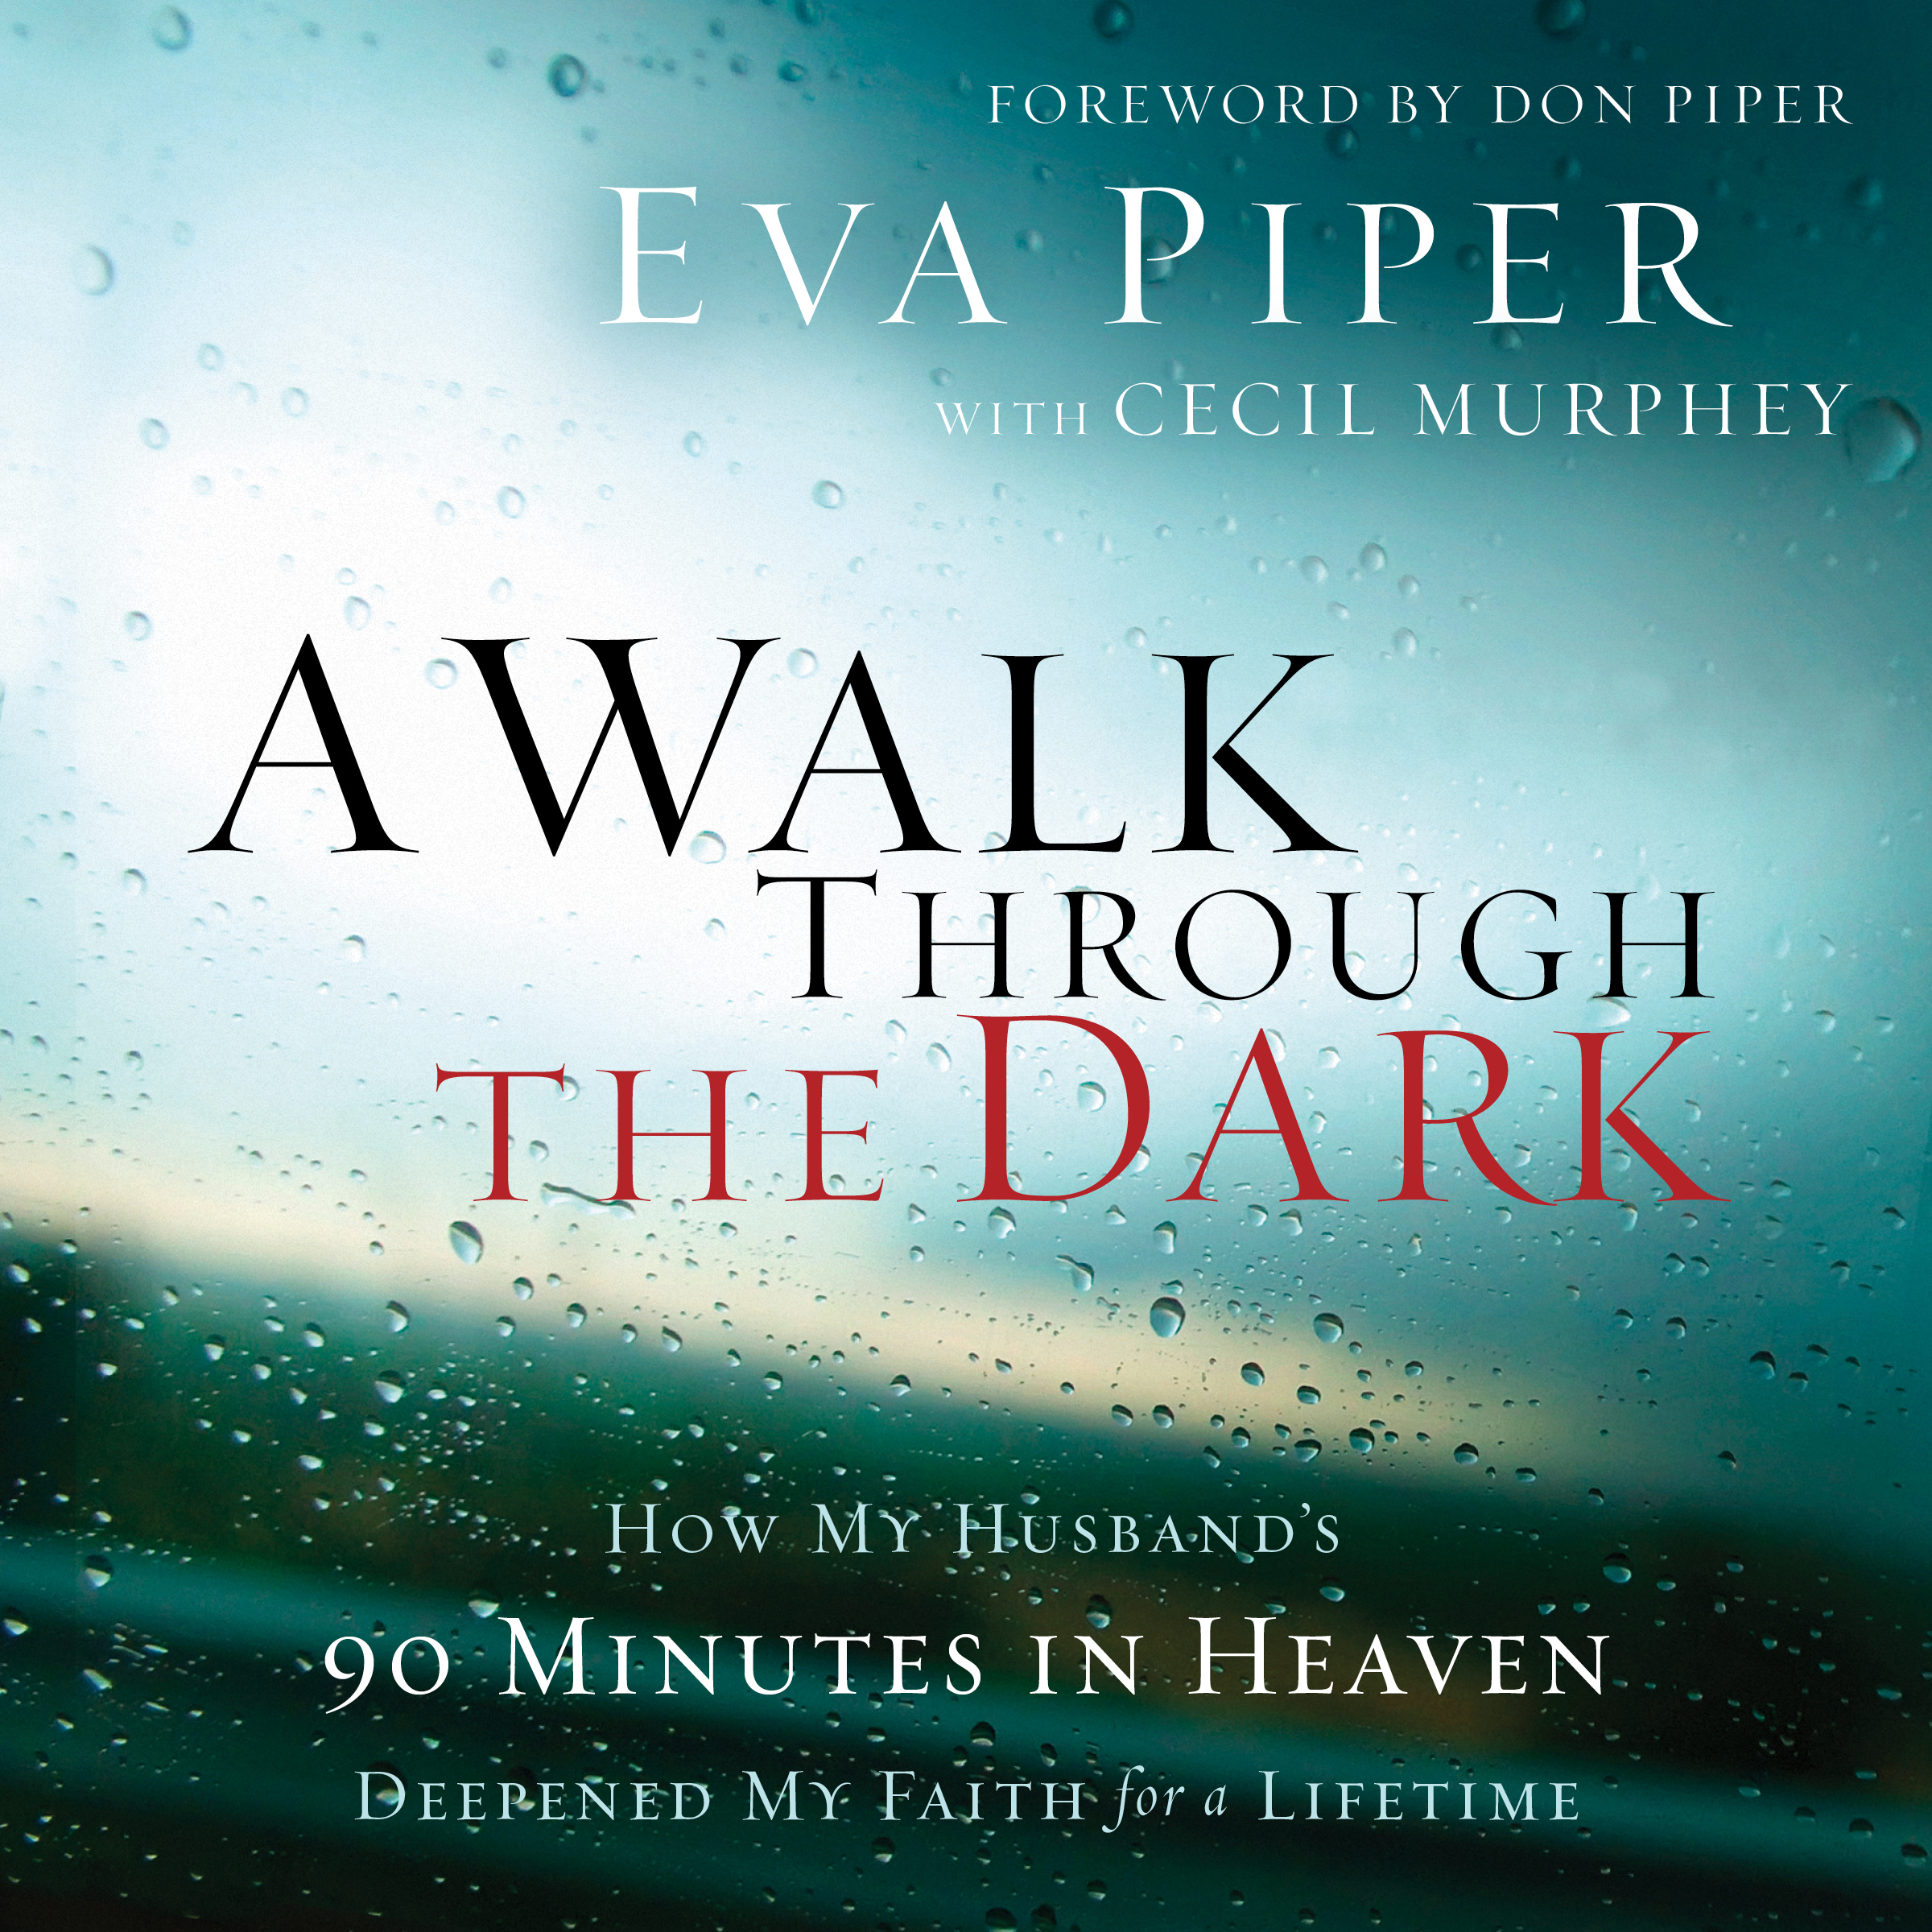 Printable A Walk Through The Dark: How My Husband's 90 Minutes in Heaven Deepened My Faith for a Lifetime Audiobook Cover Art